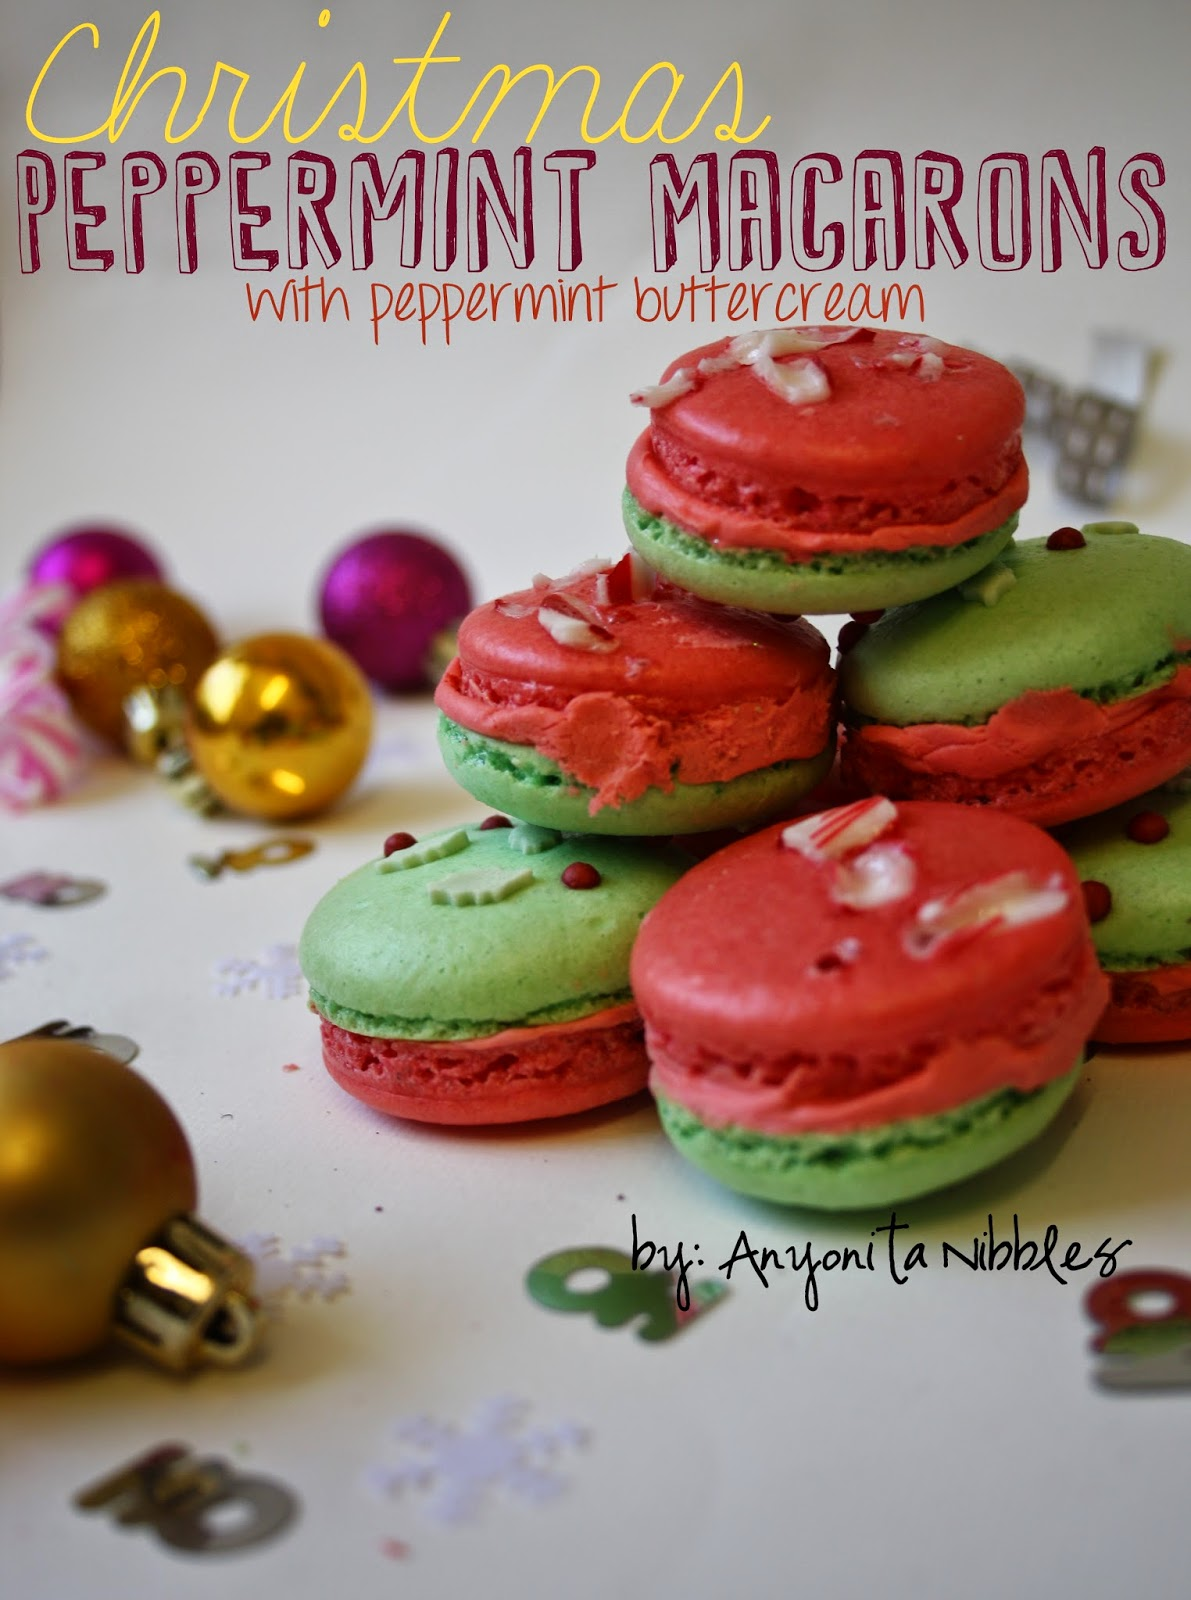 8 Last Minute Christmas Treats: Christmas Peppermint Macarons from Anyonita-nibbles.co.uk